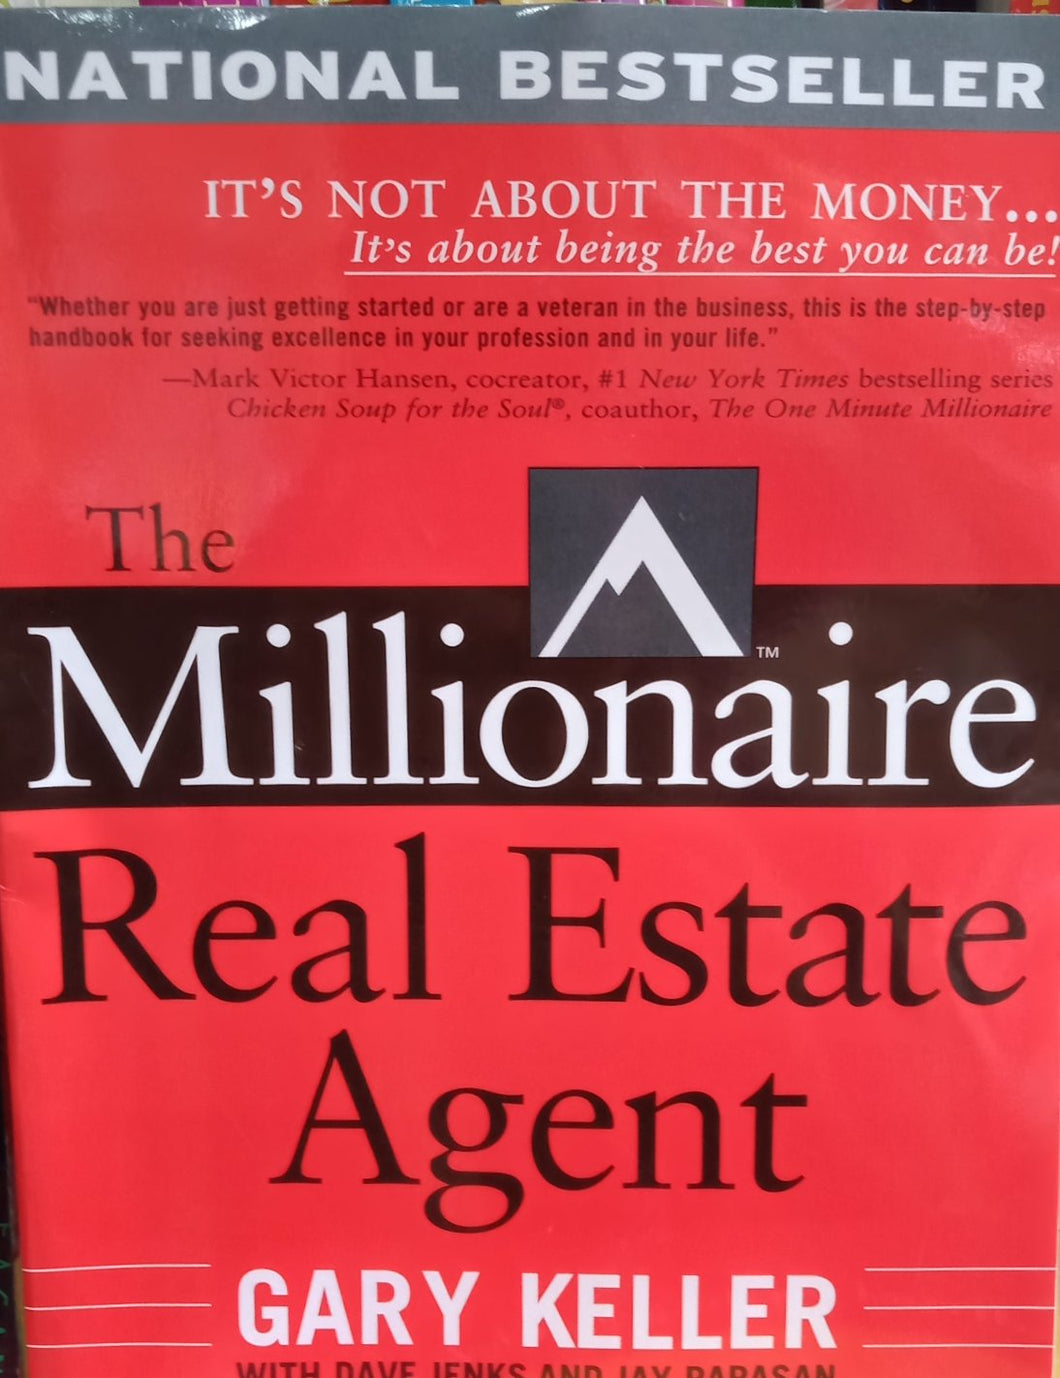 The Millionaire By Gary Keller